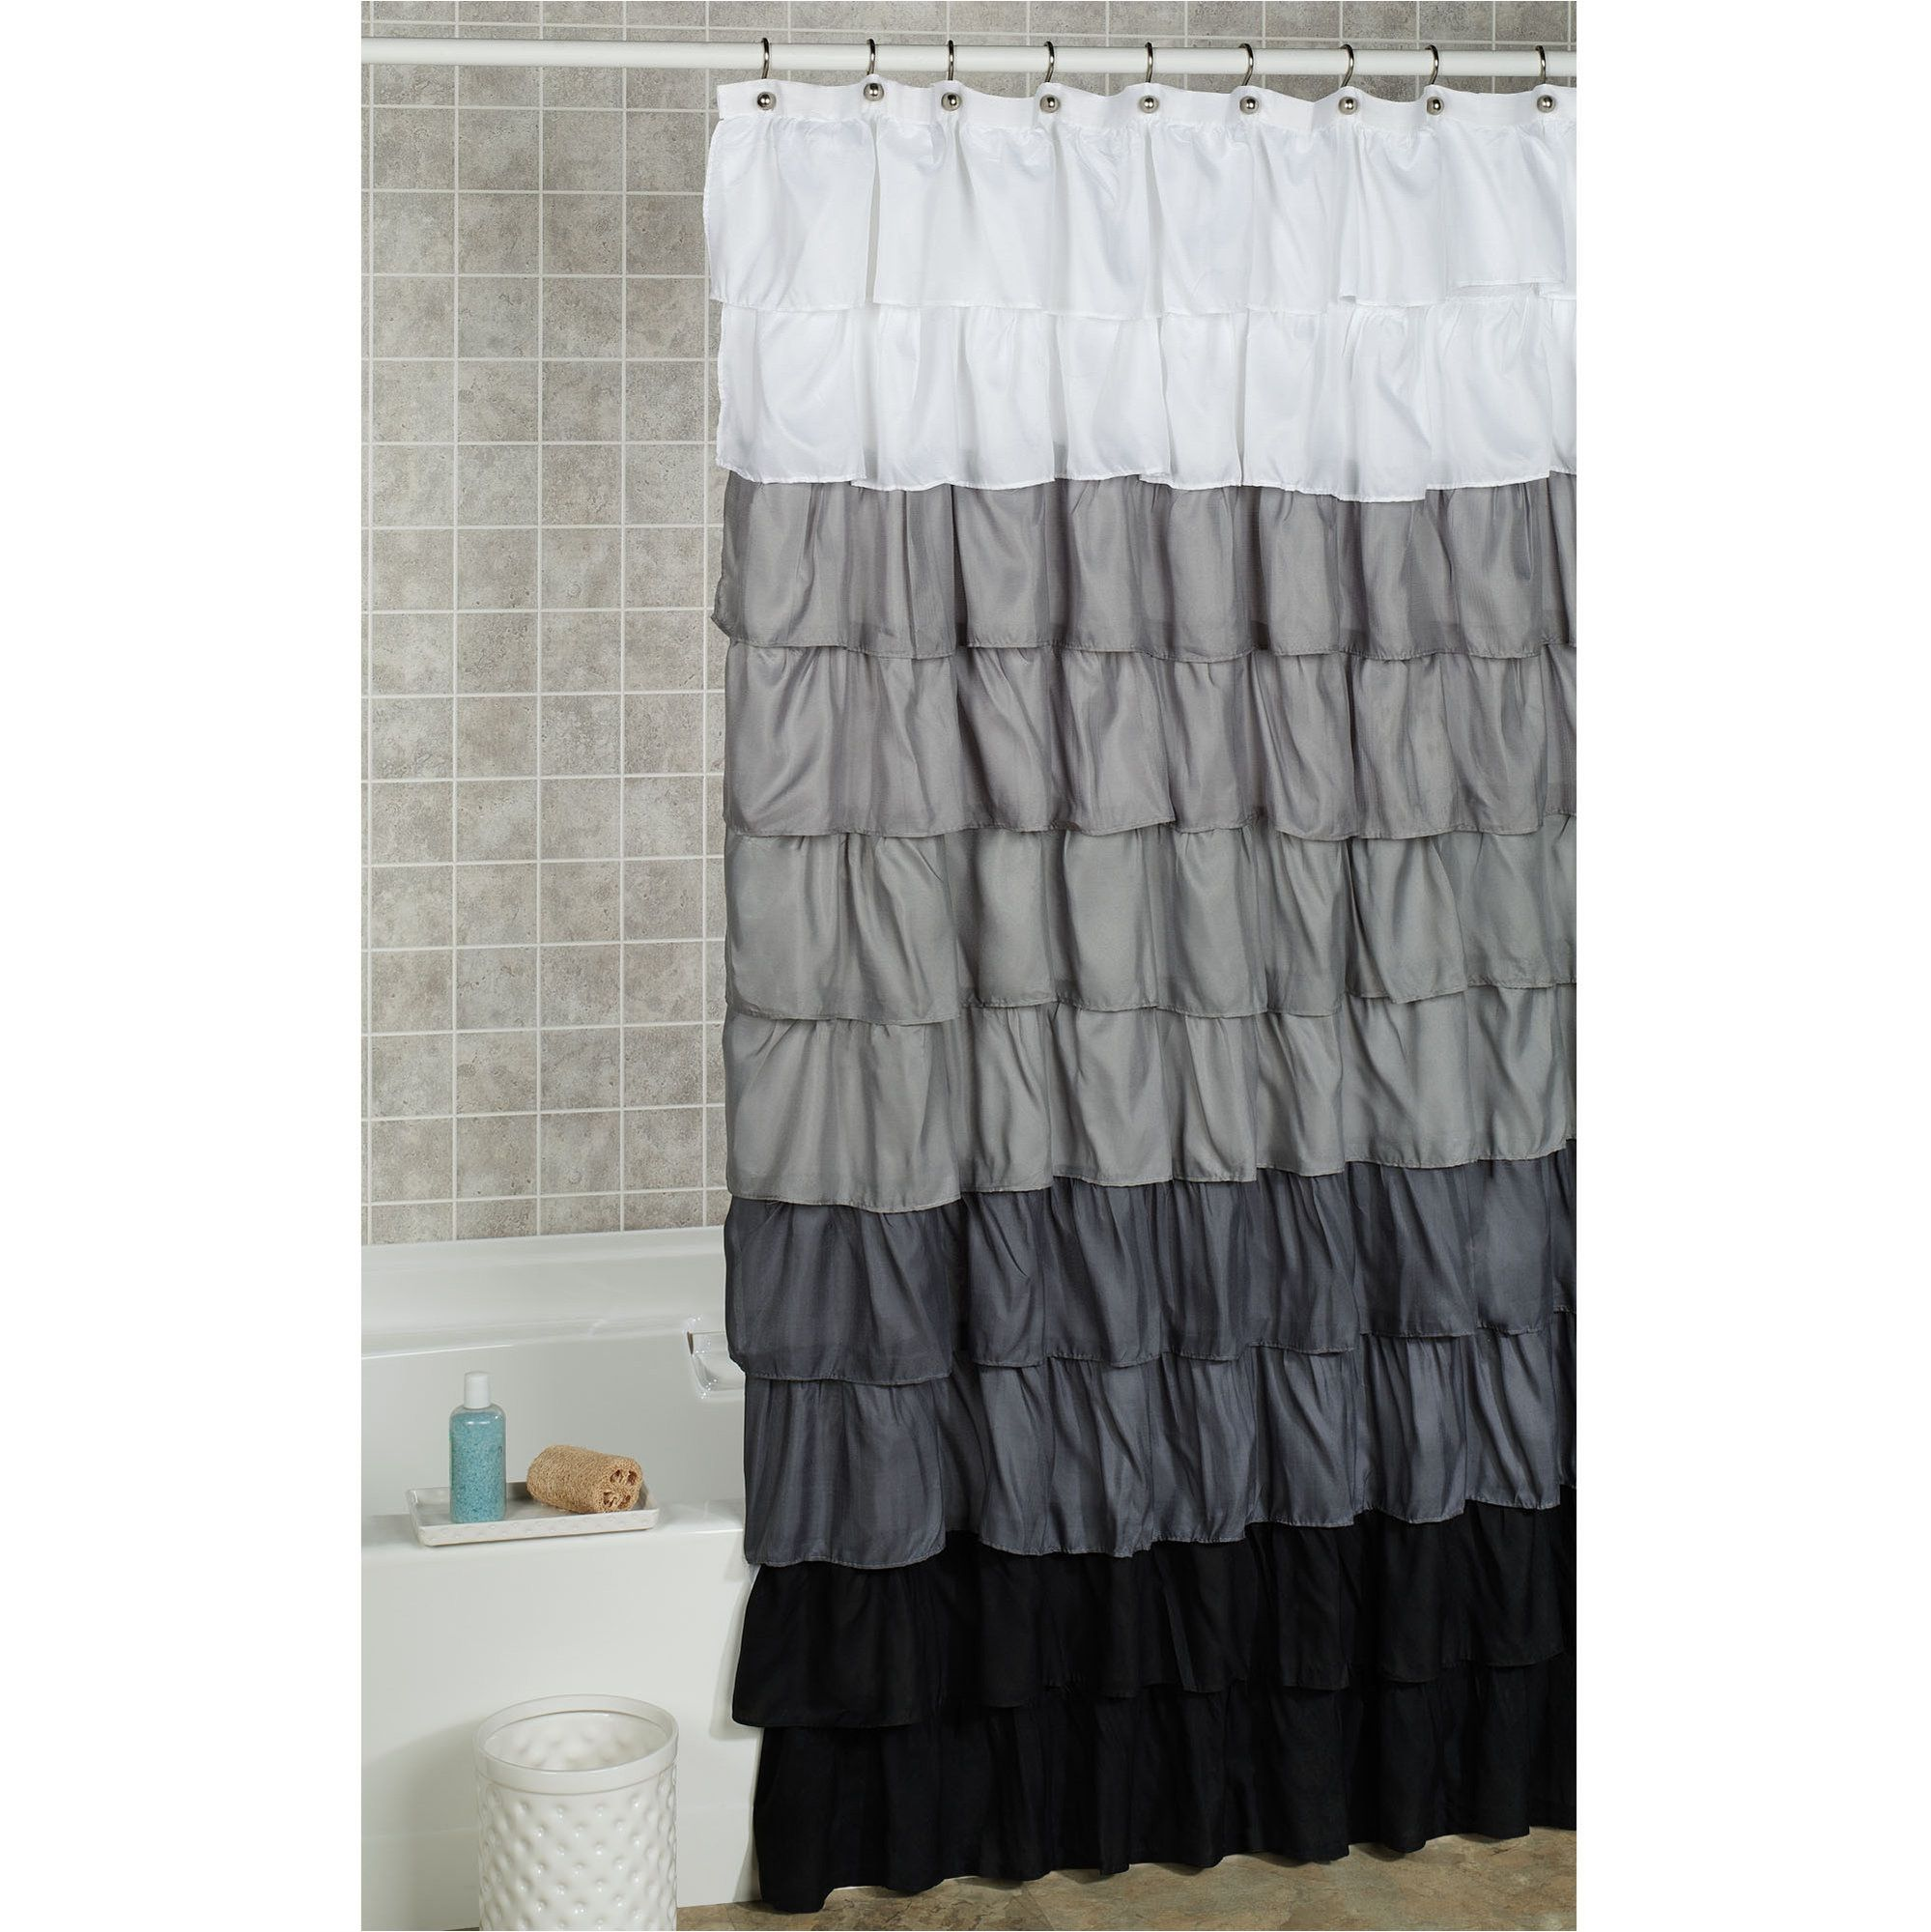 Wonderful Maribella Charcoal Ombre Ruffled Shower Curtain